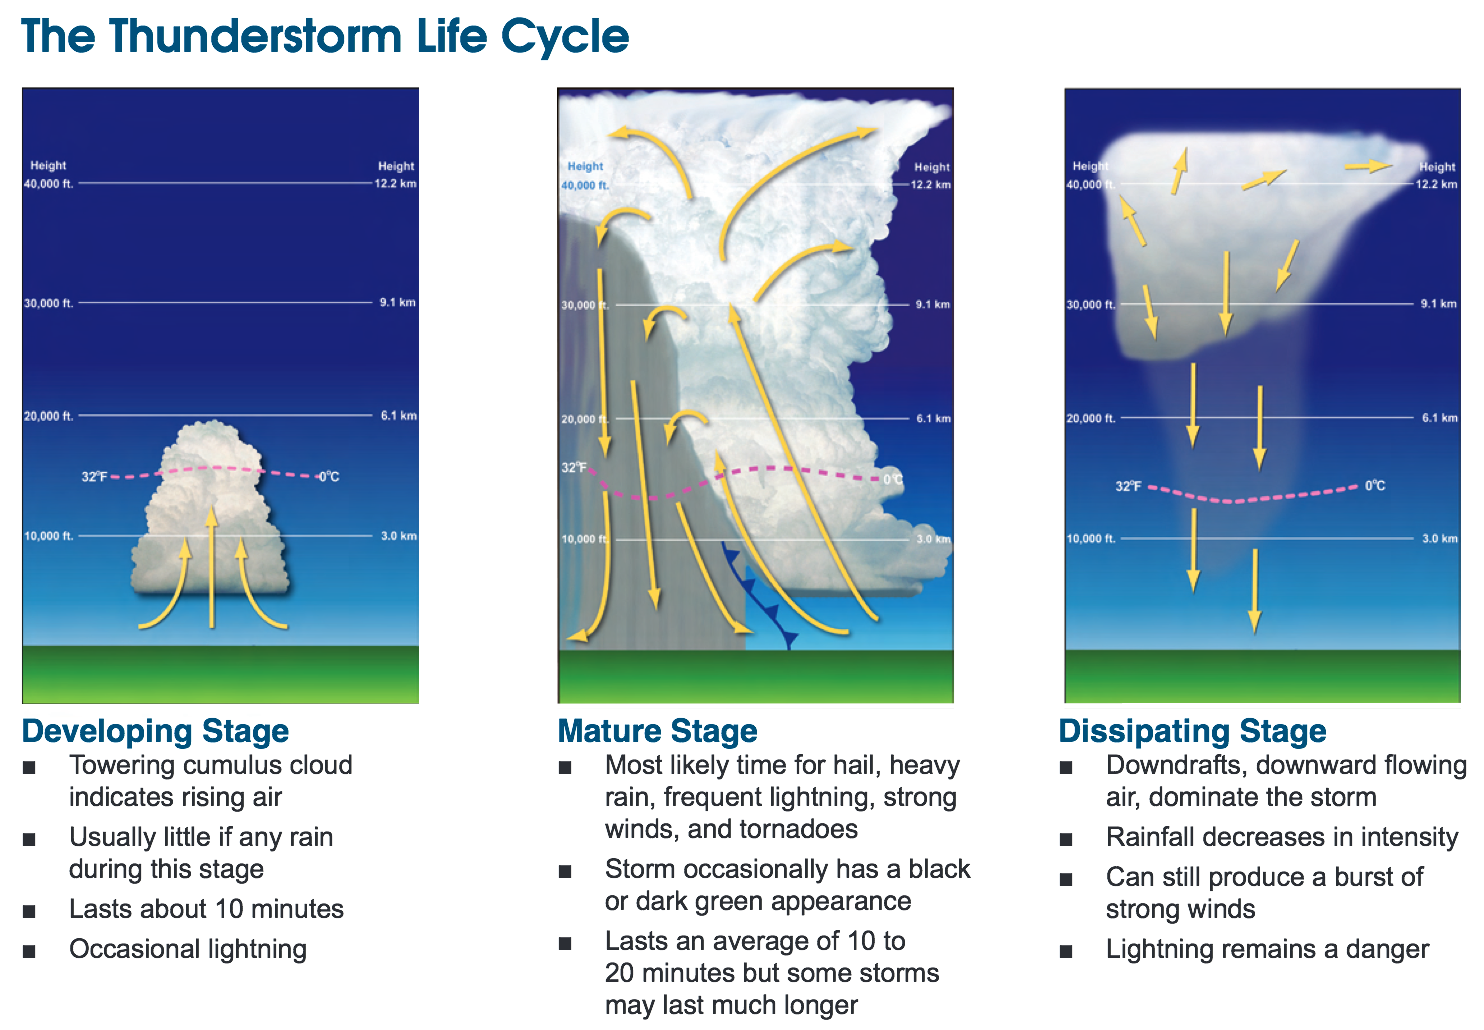 The Life Cycle of a Thunderstorm